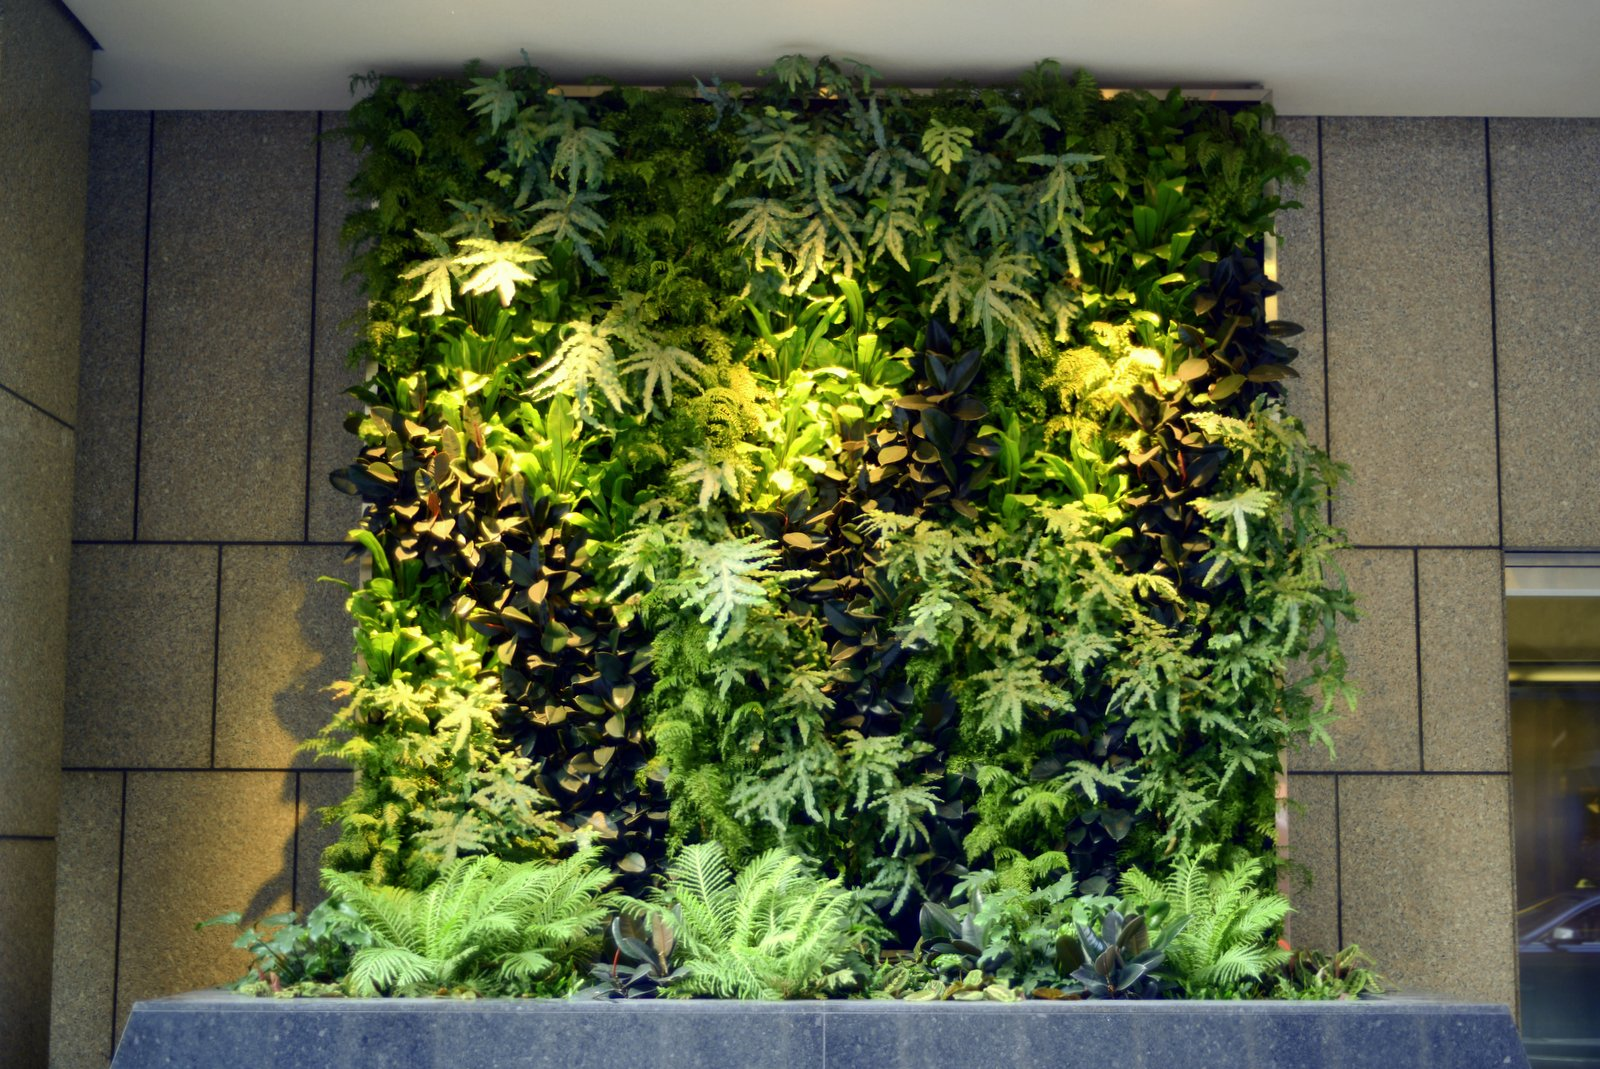 95f1db3d5 Beautify Your Office Interiorscape with a Living Vertical Garden